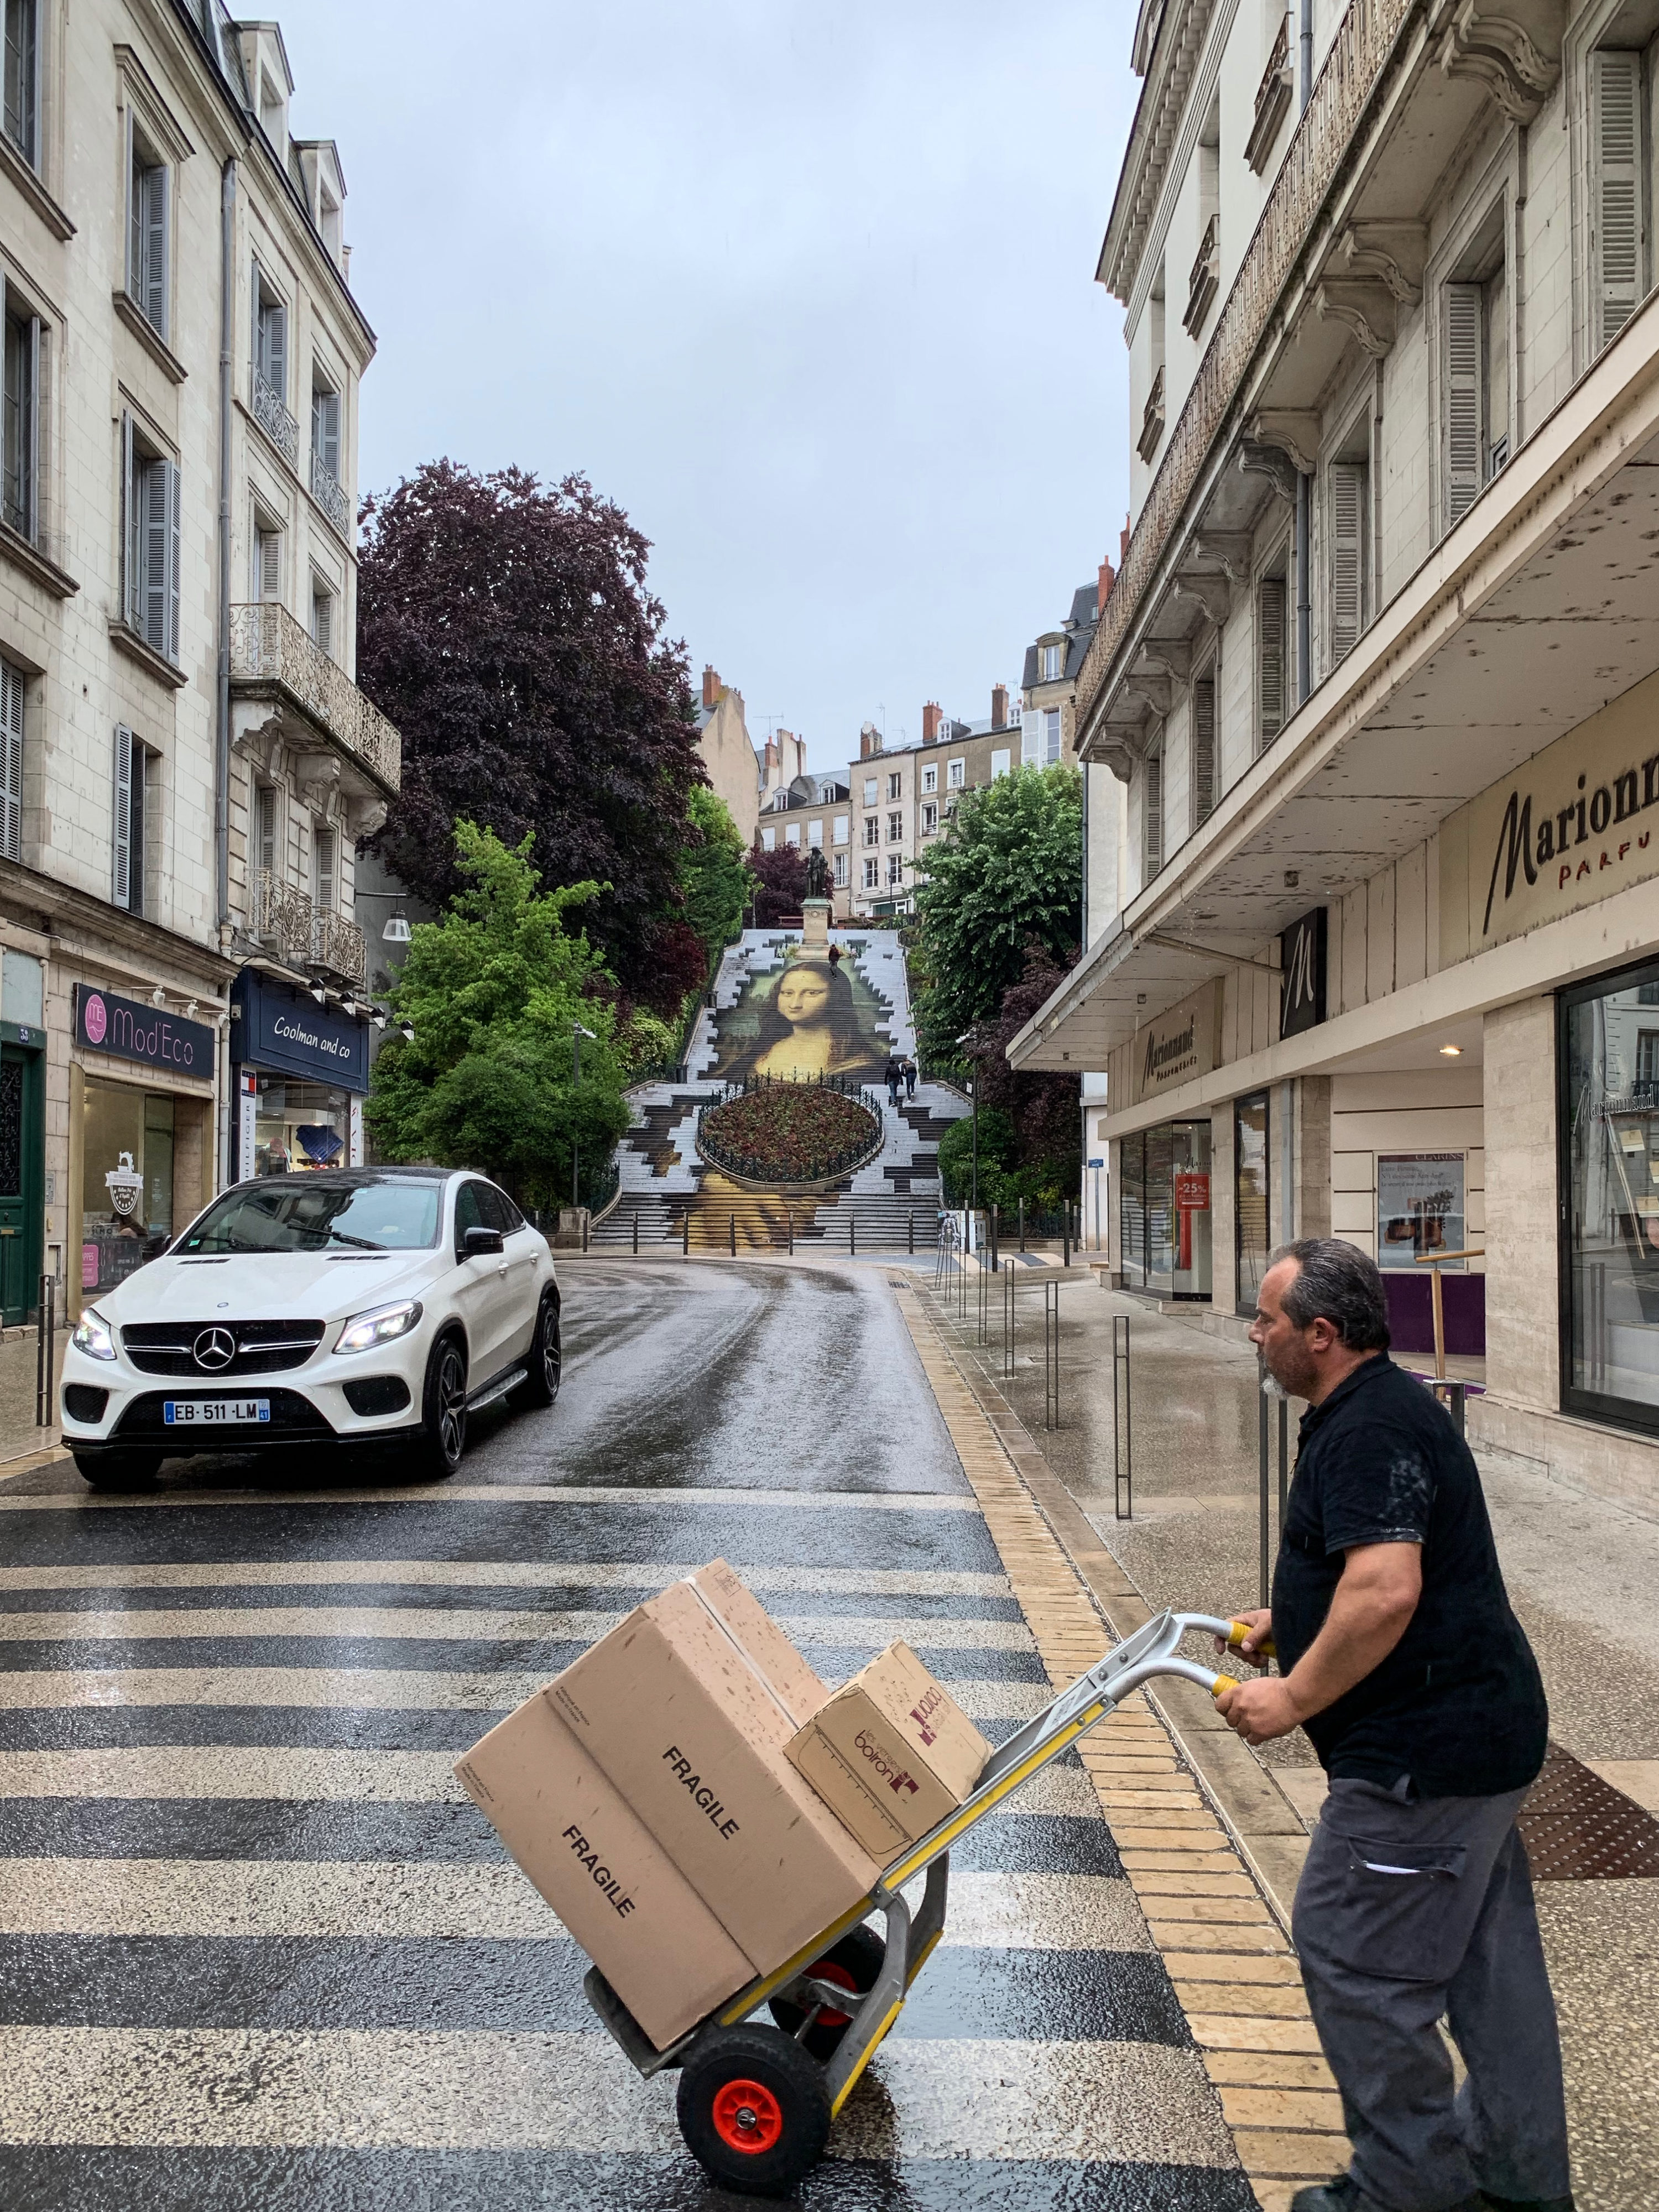 Magie in Blois und Muse in Talcy Mona Lisa